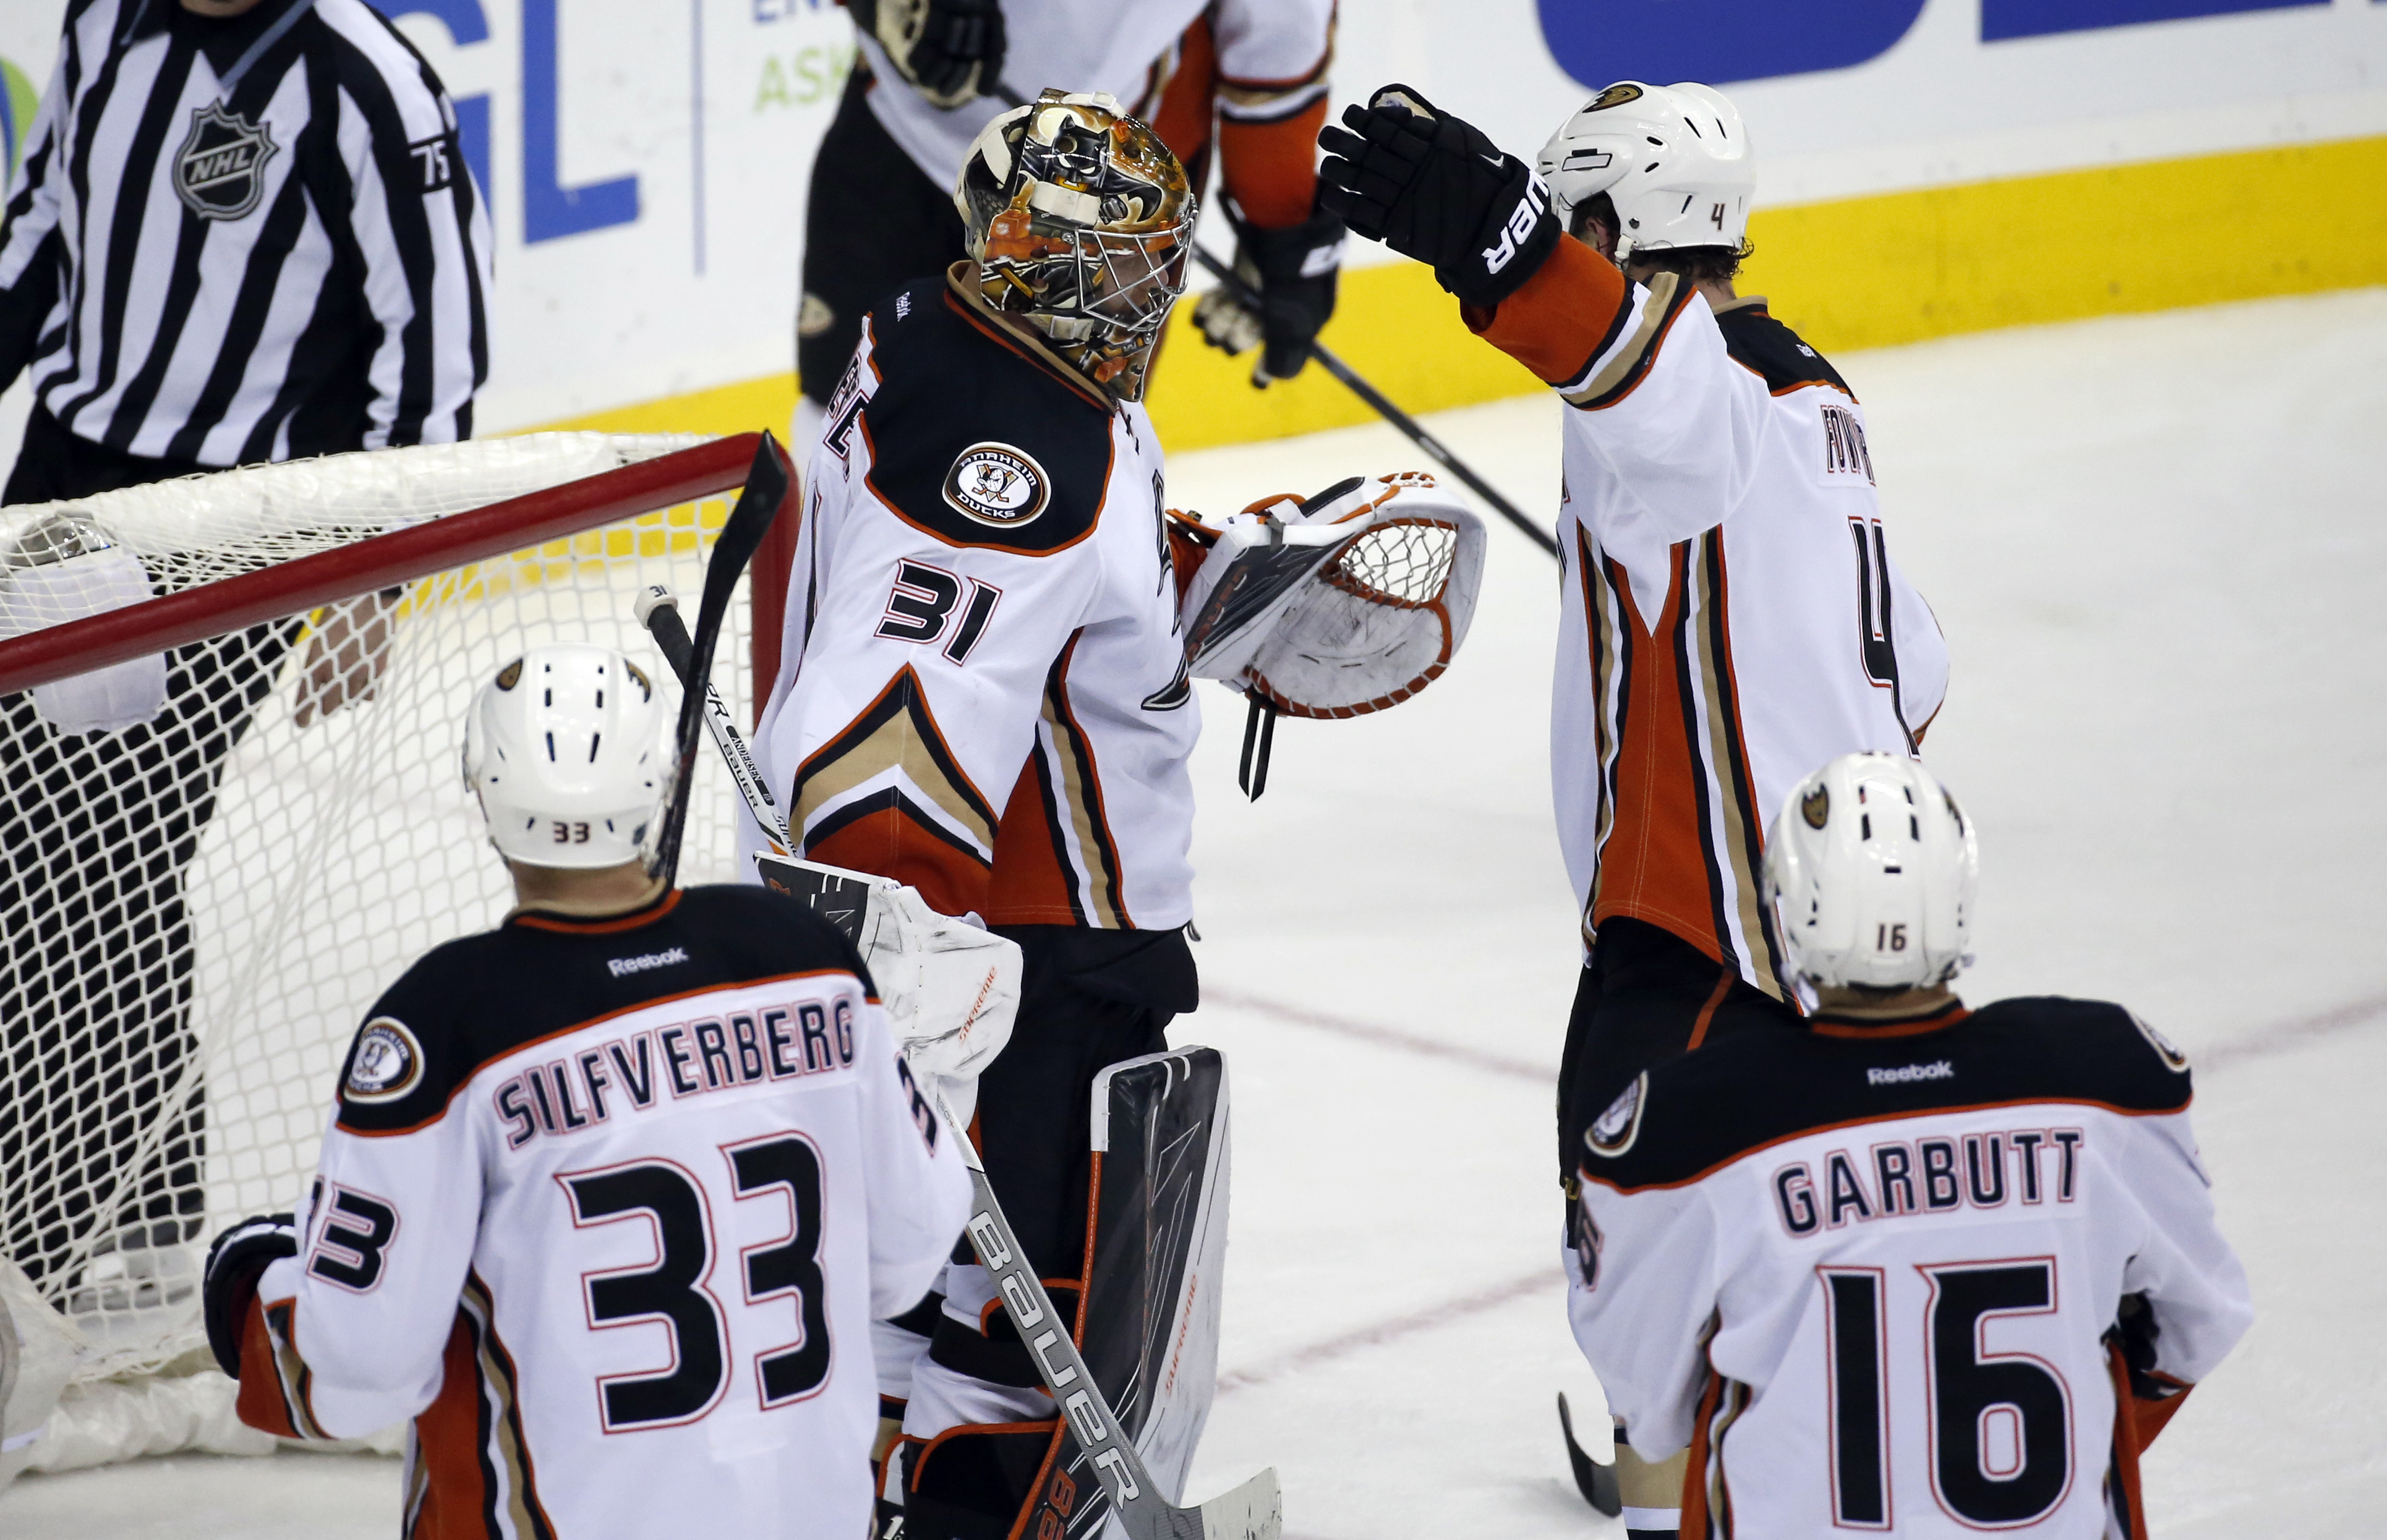 Anaheim Ducks goalie Frederik Andersen (31), from Denmark, and defenseman Cam Fowler (4), with left wing Jakob Silfverberg (33), from Sweden, and left wing Ryan Garbutt (16) celebrate after an NHL hockey game against the Washington Capitals, Sunday, April